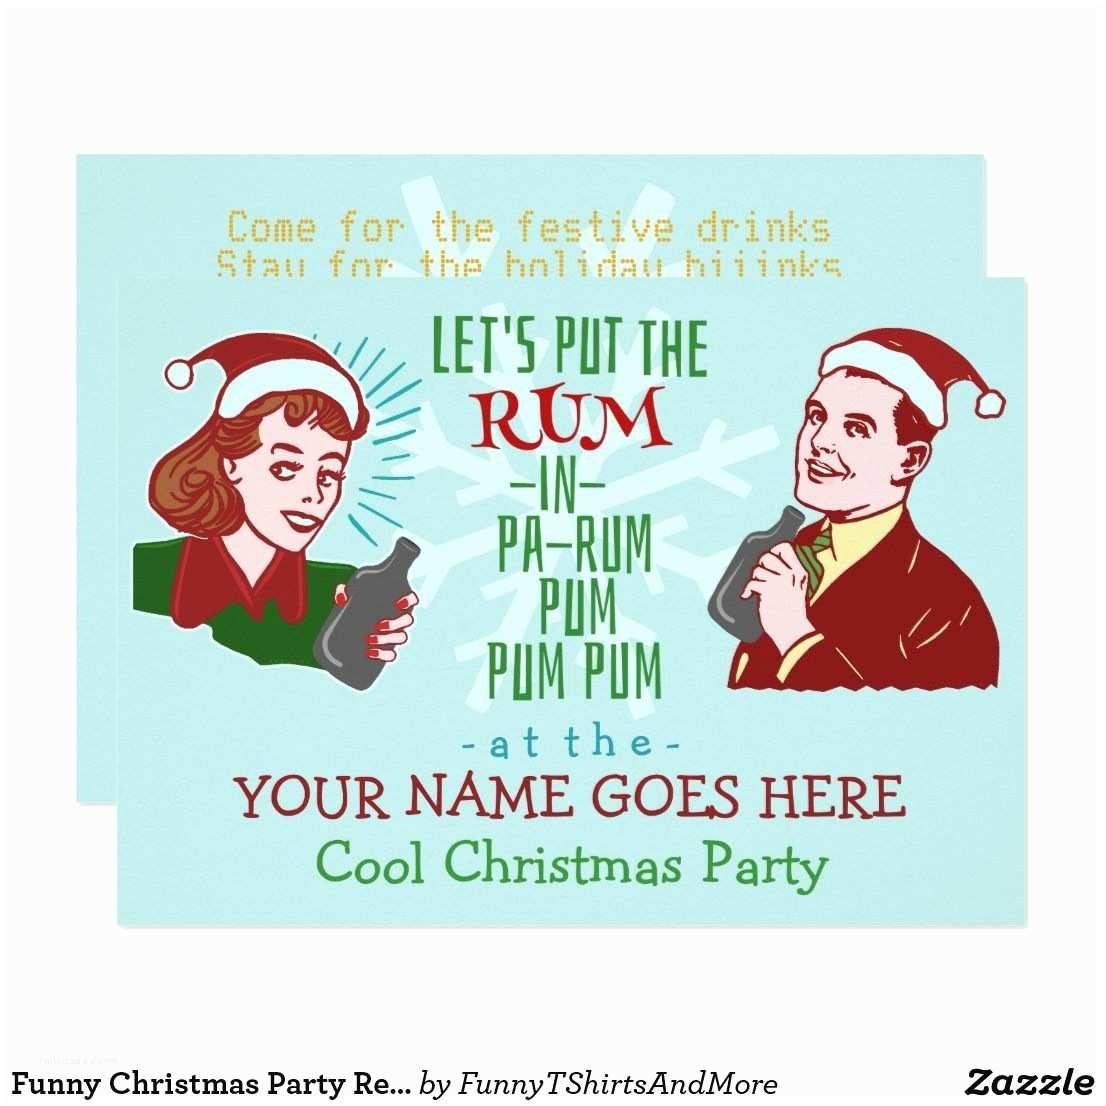 Funny Holiday Party Invitations Funny Christmas Party Retro Rum Adult Holiday V2